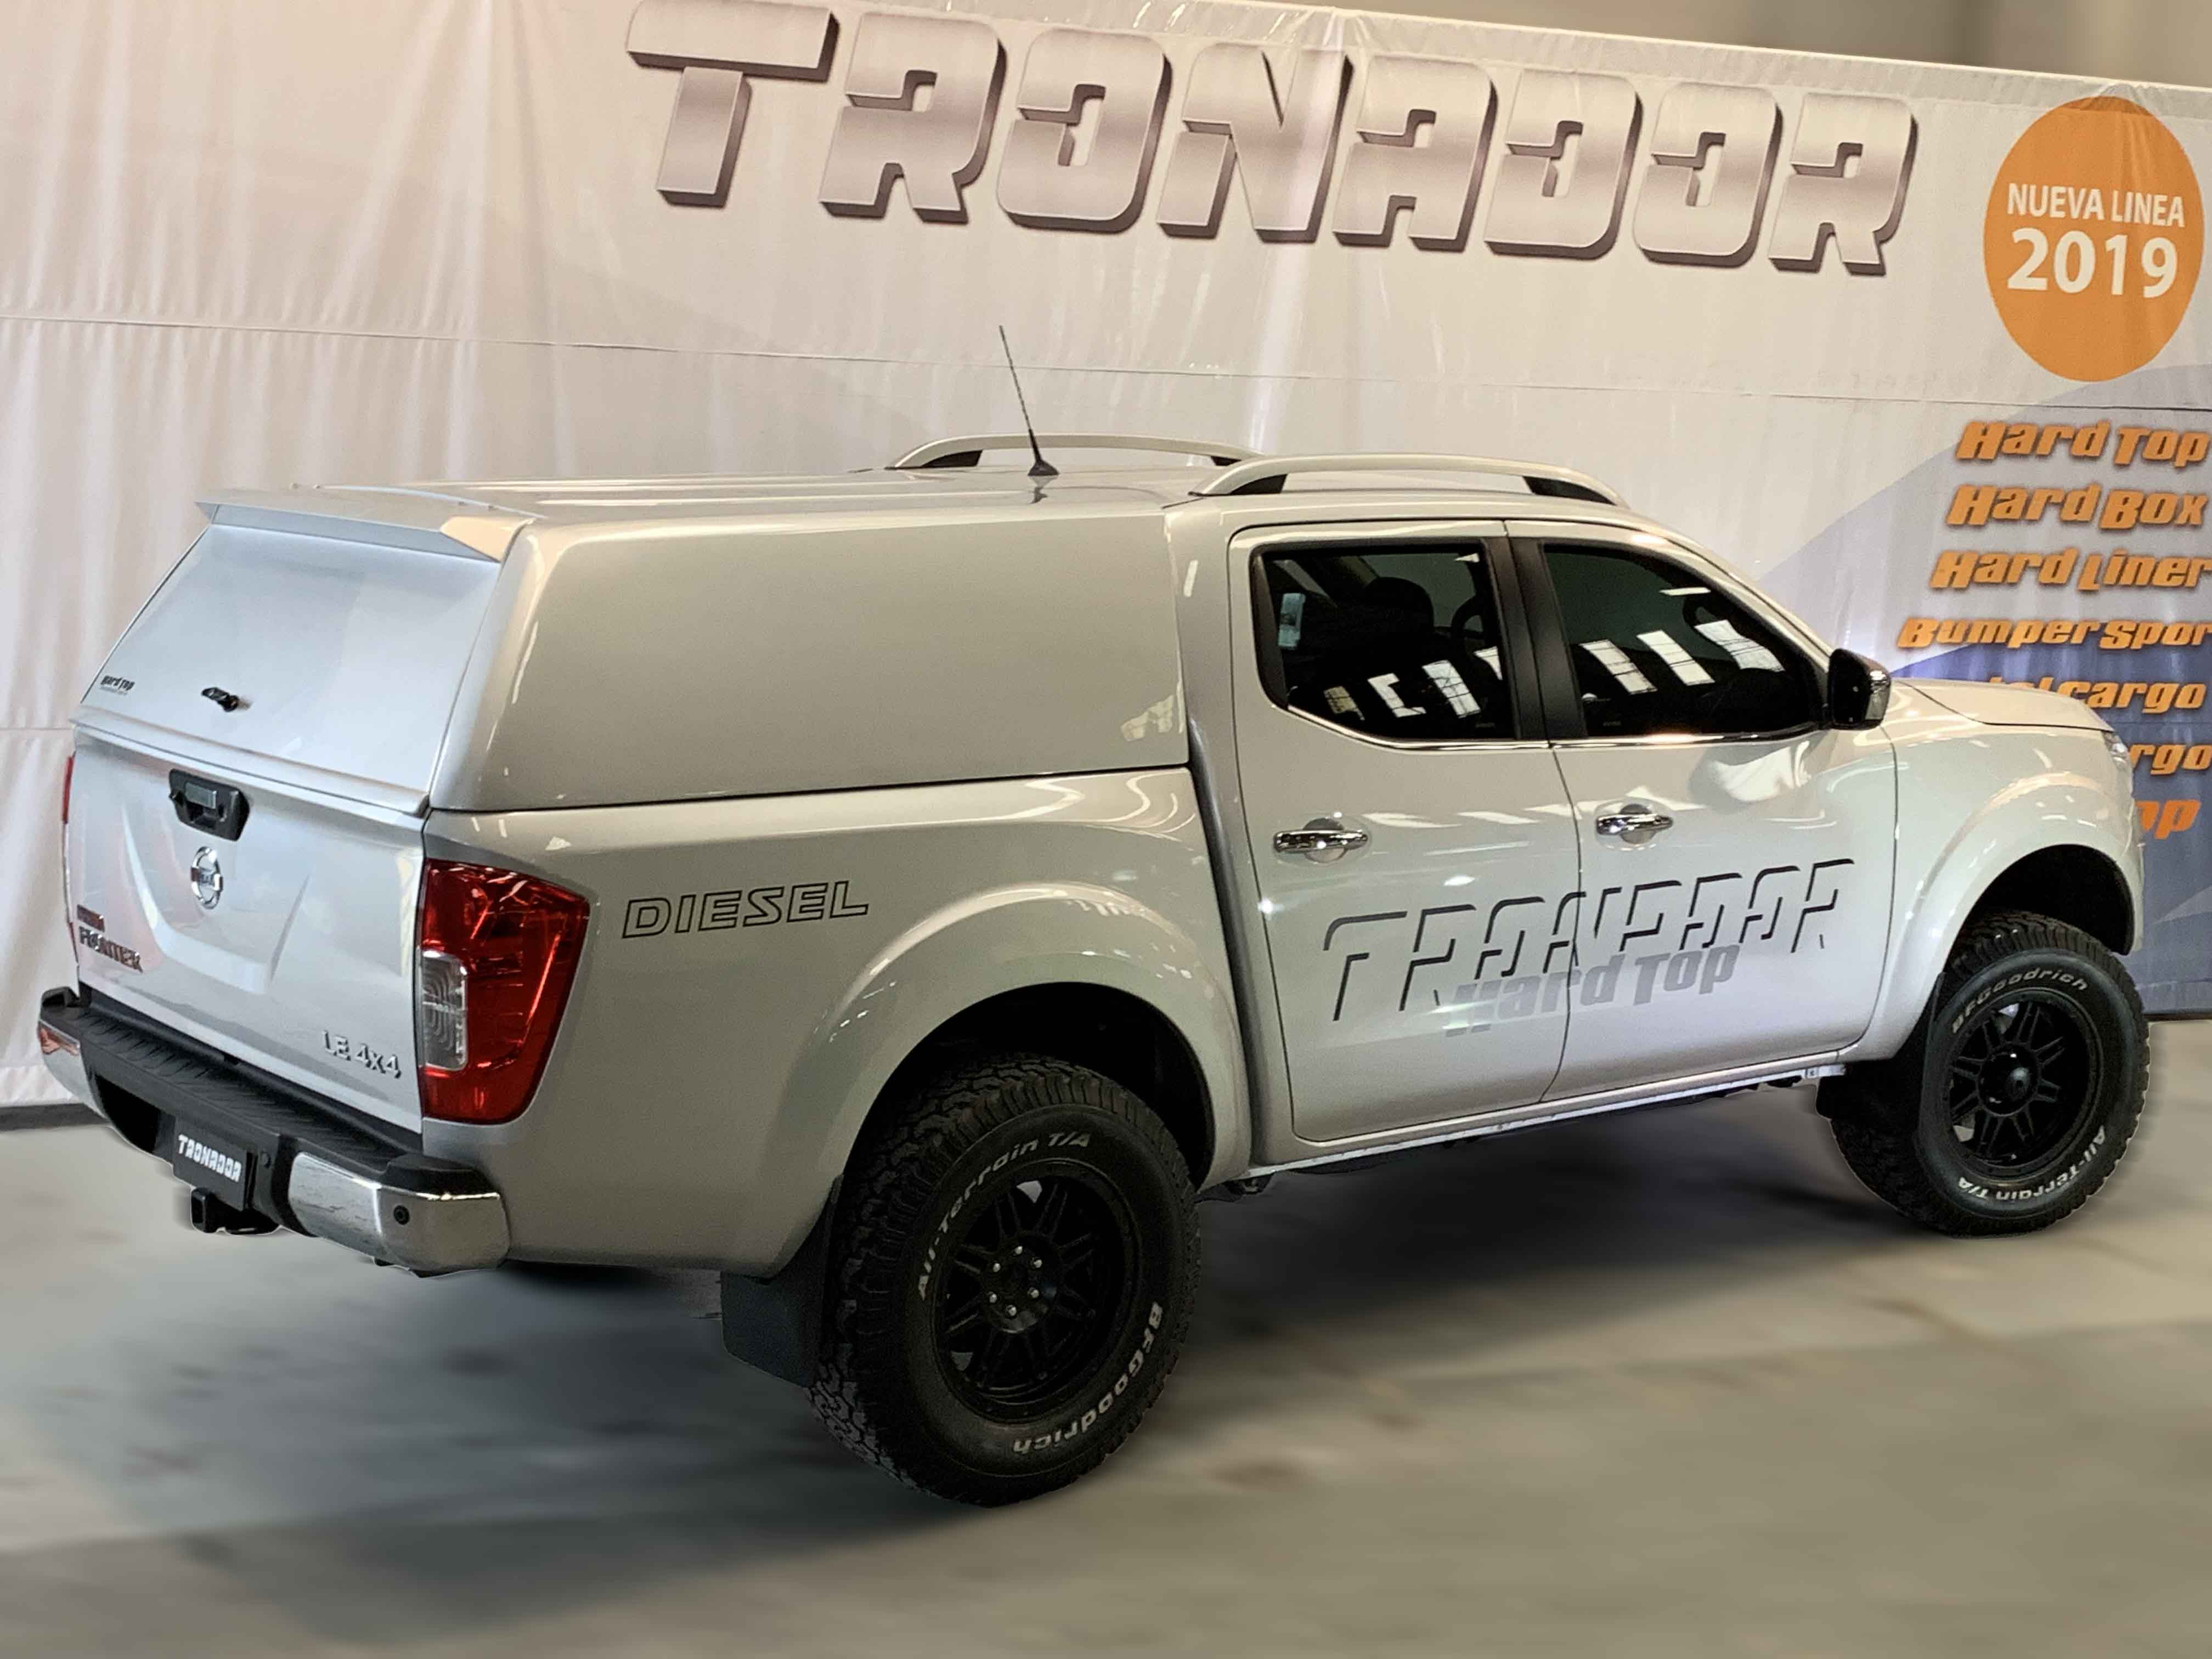 Nissan-Frontier-np300-cupula